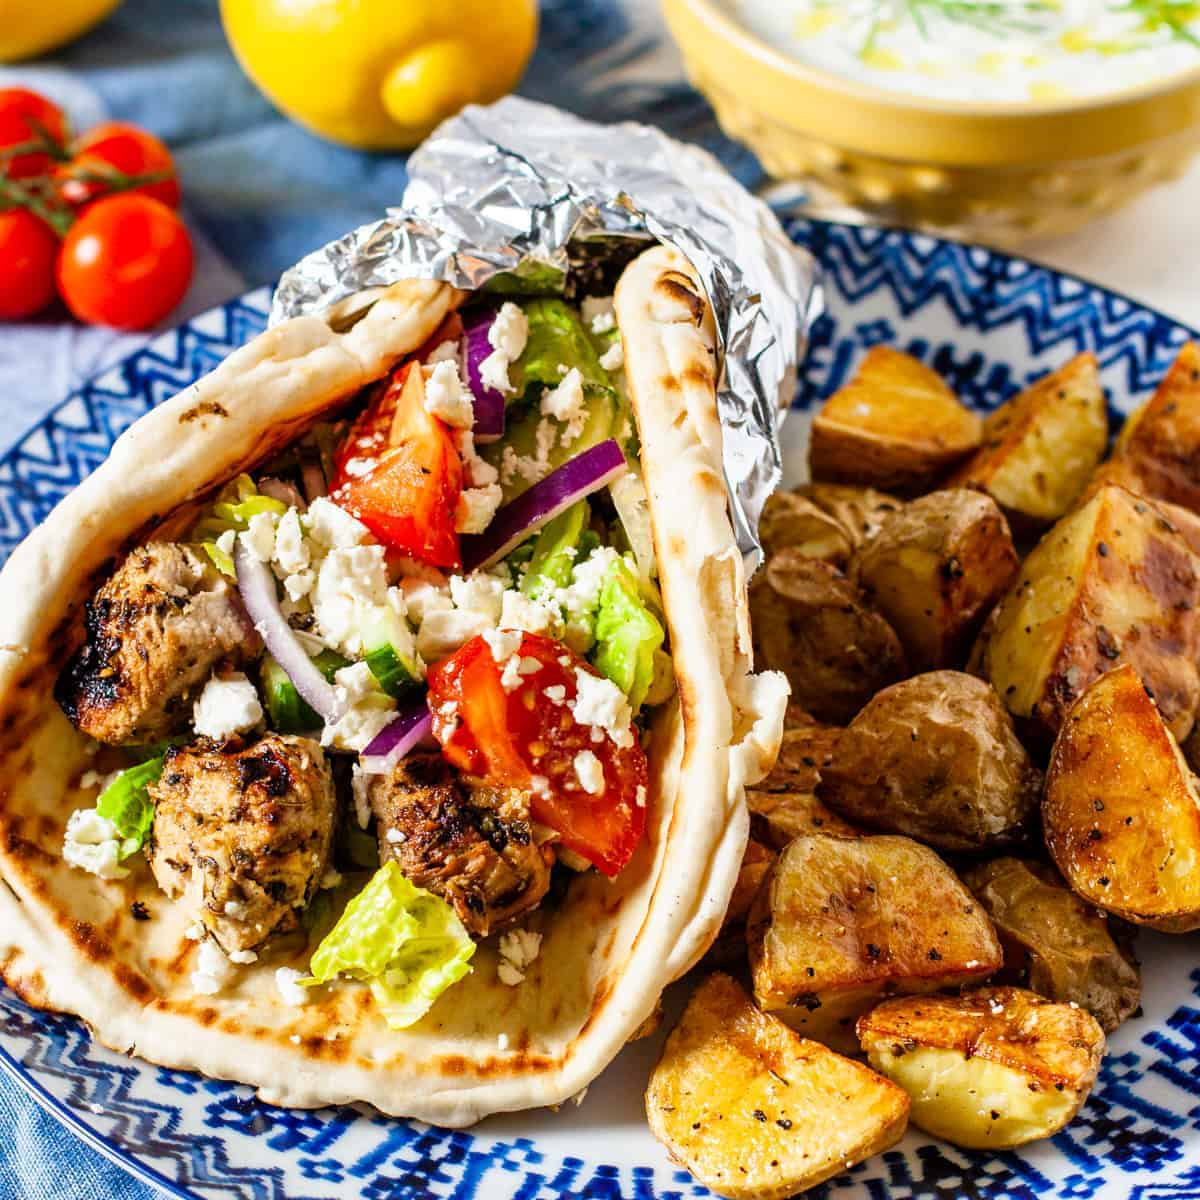 chicken souvlaki pita wrap served with roasted potatoes